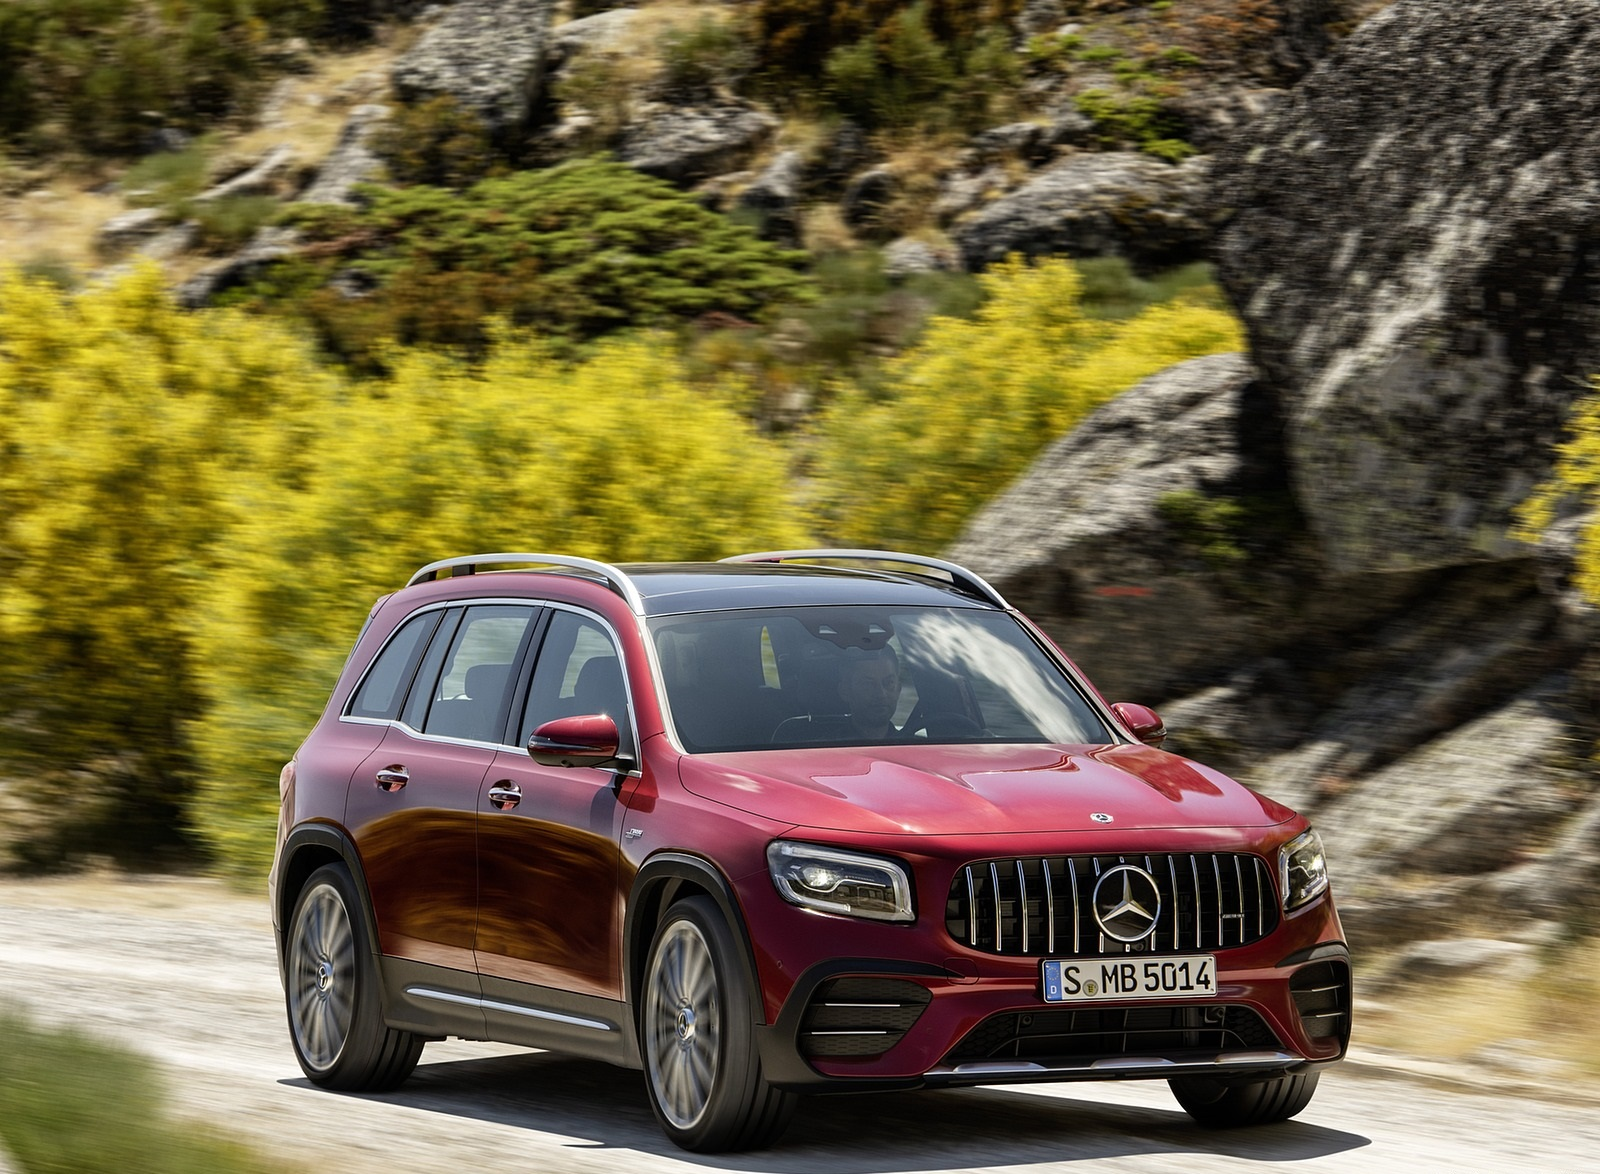 2021 Mercedes-AMG GLB 35 4MATIC (Color: Designo Patagonia Red Metallic) Front Three-Quarter Wallpapers (7)